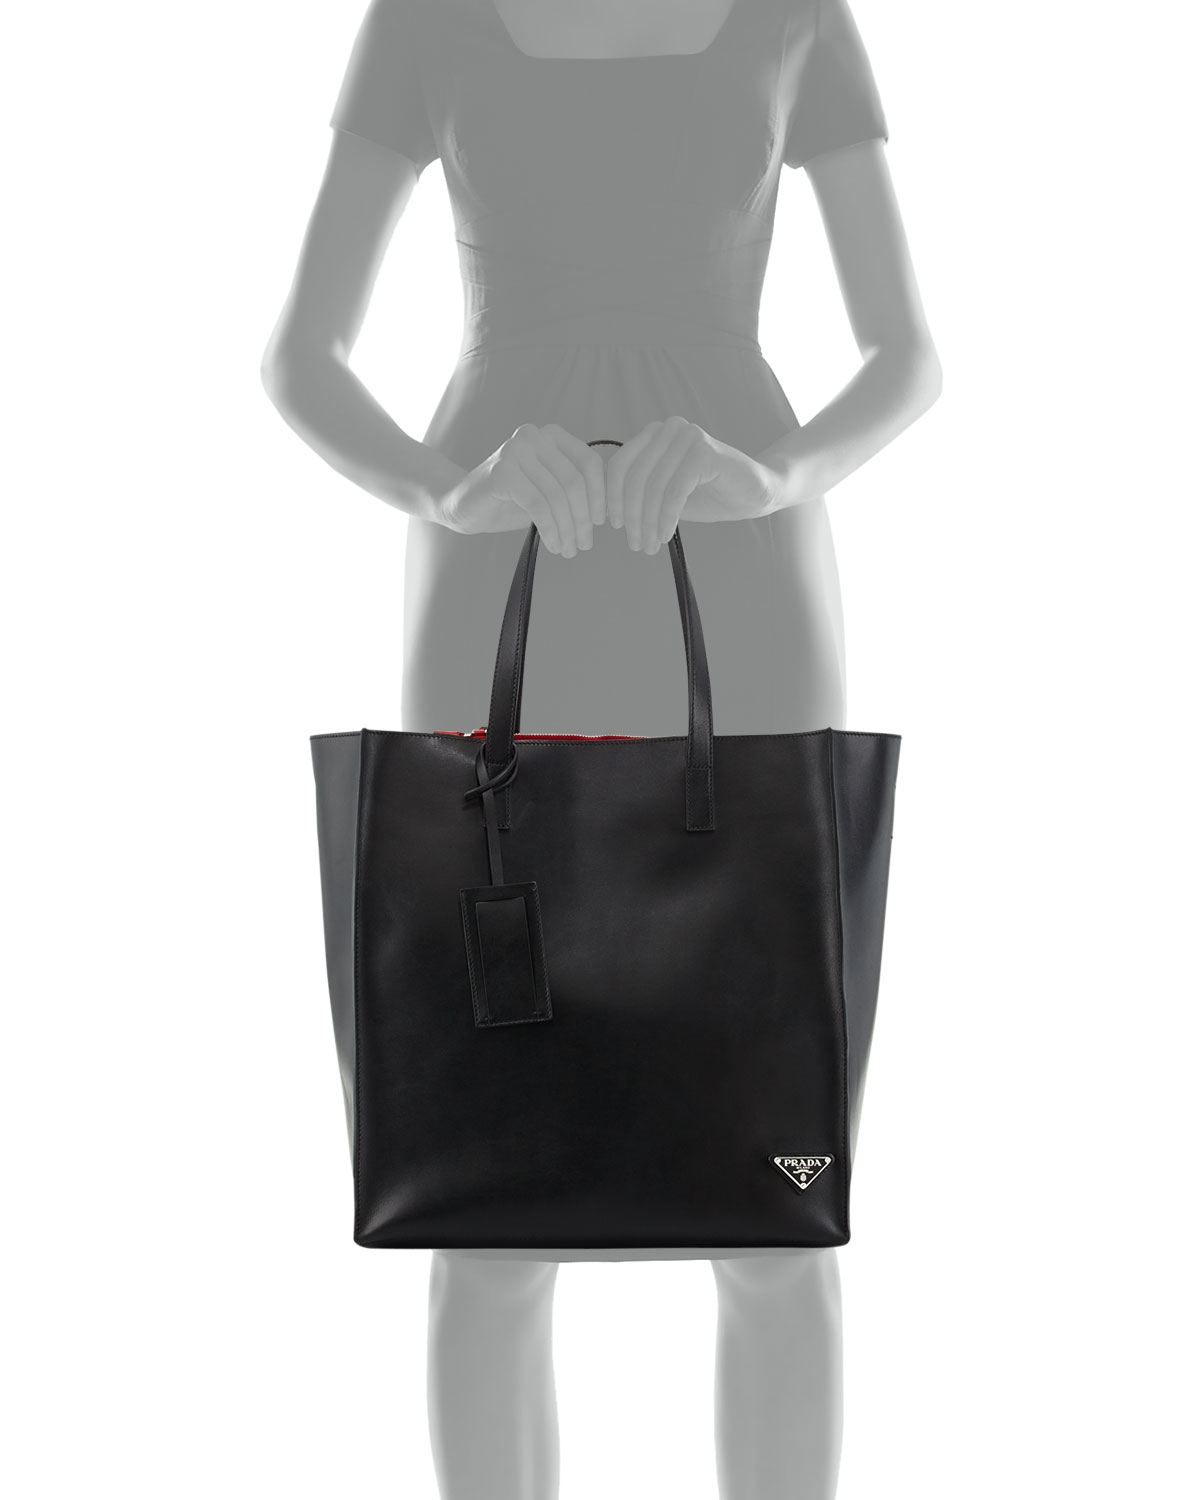 de4fd12ddcaf Prada Soft Leather Tote Bag in Black - Lyst